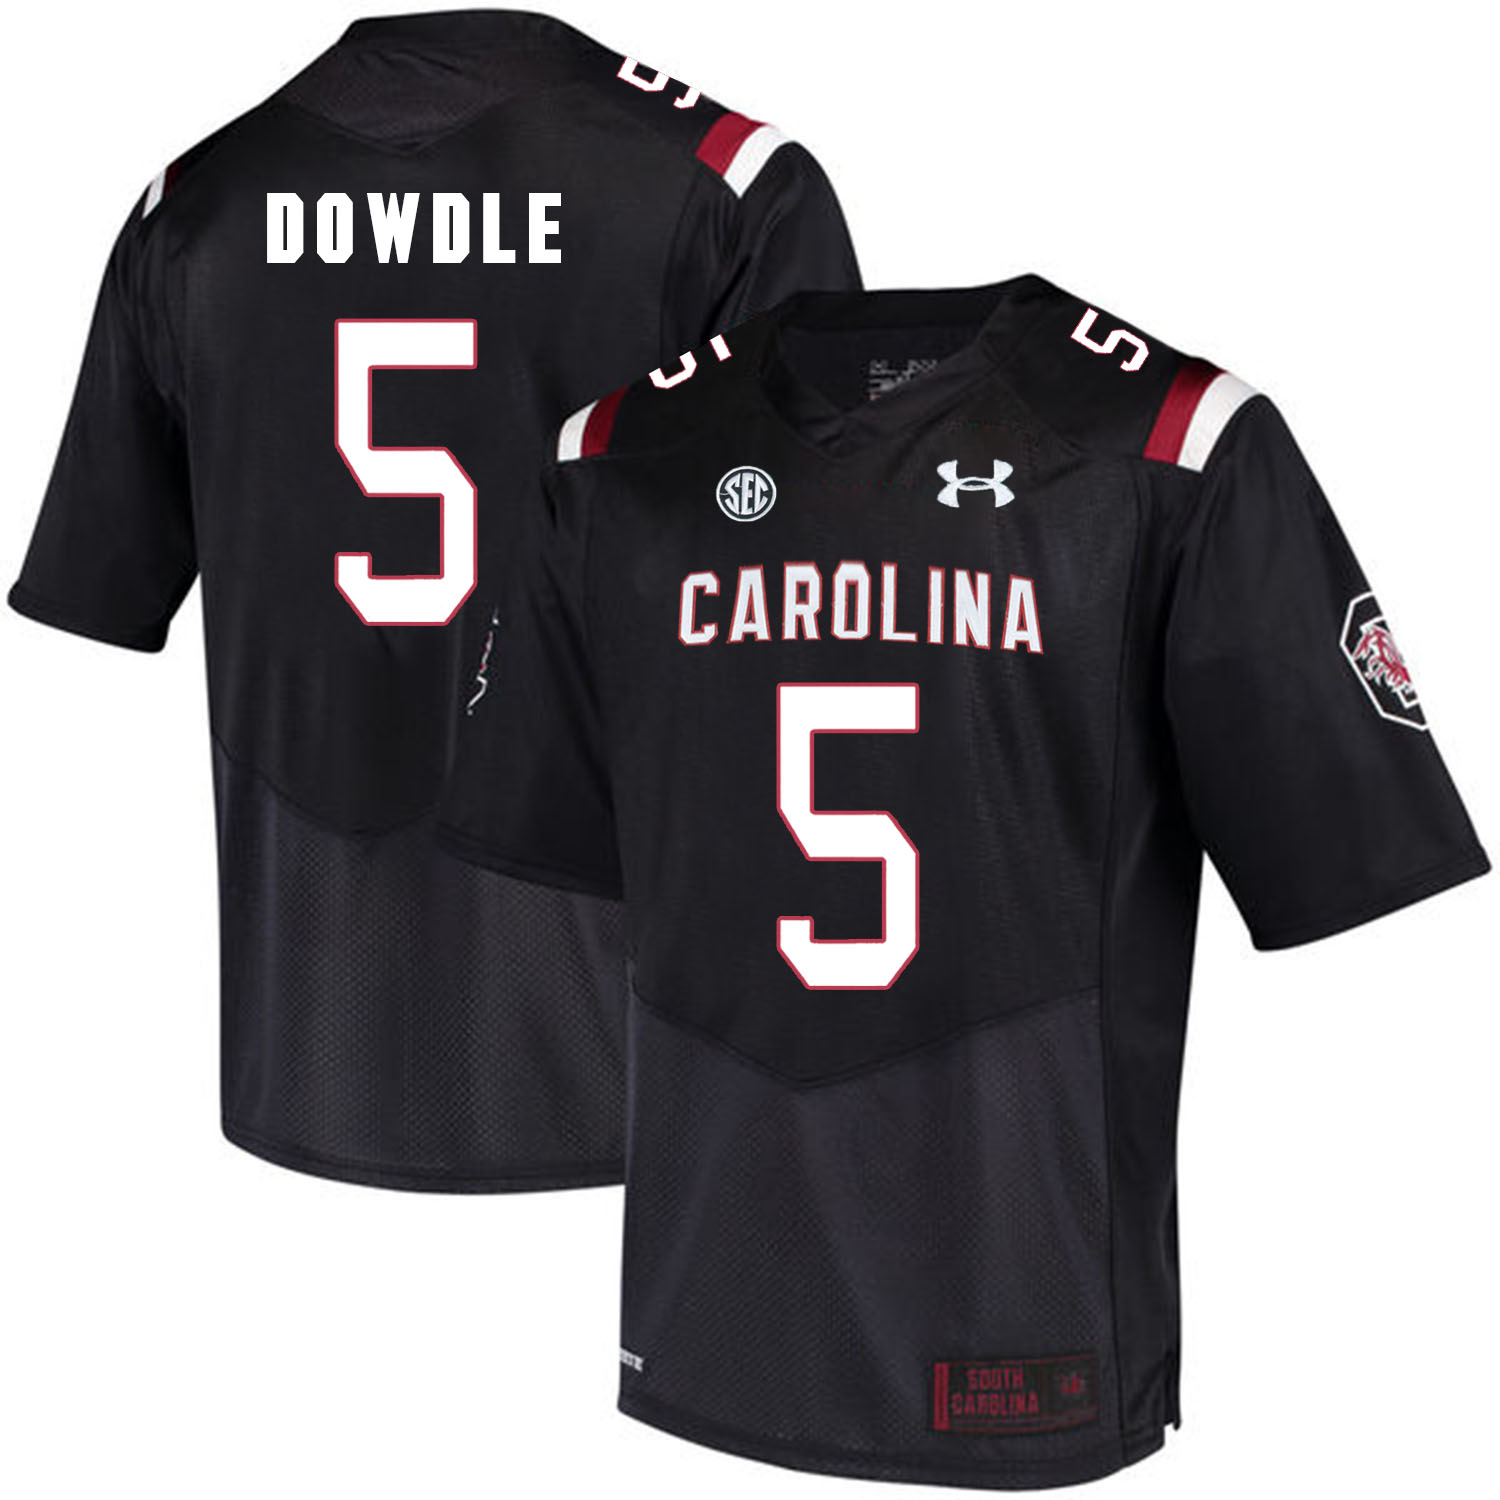 South Carolina Gamecocks 5 Rico Dowdle Black College Football Jersey